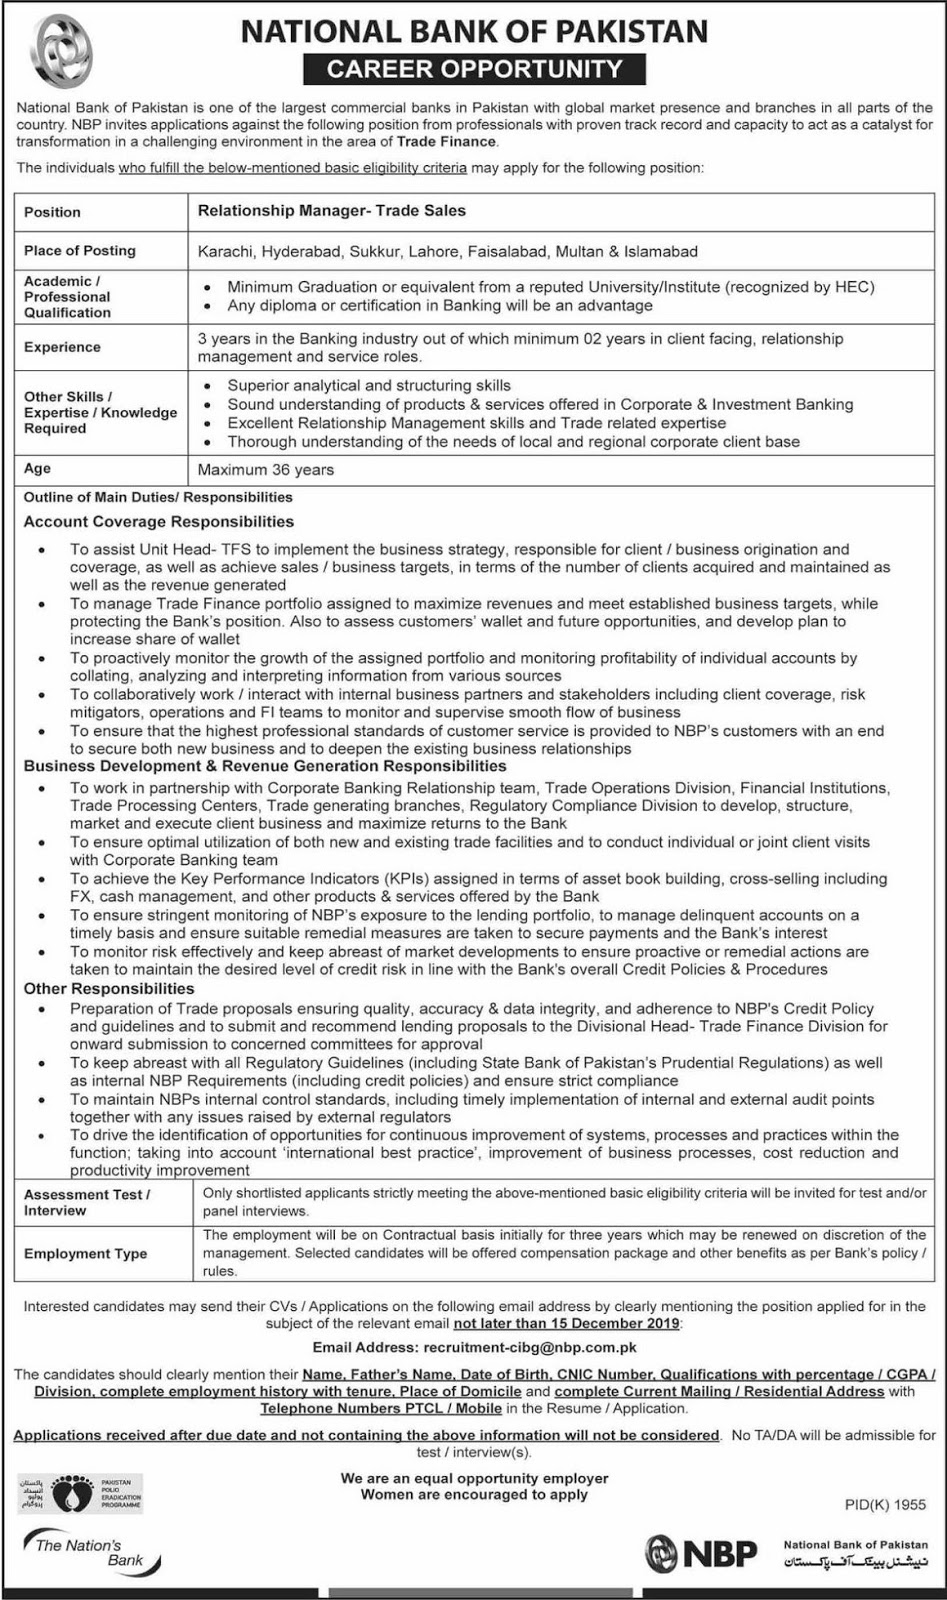 National Bank of Pakistan NBP Jobs 2019 For Relationship Manager